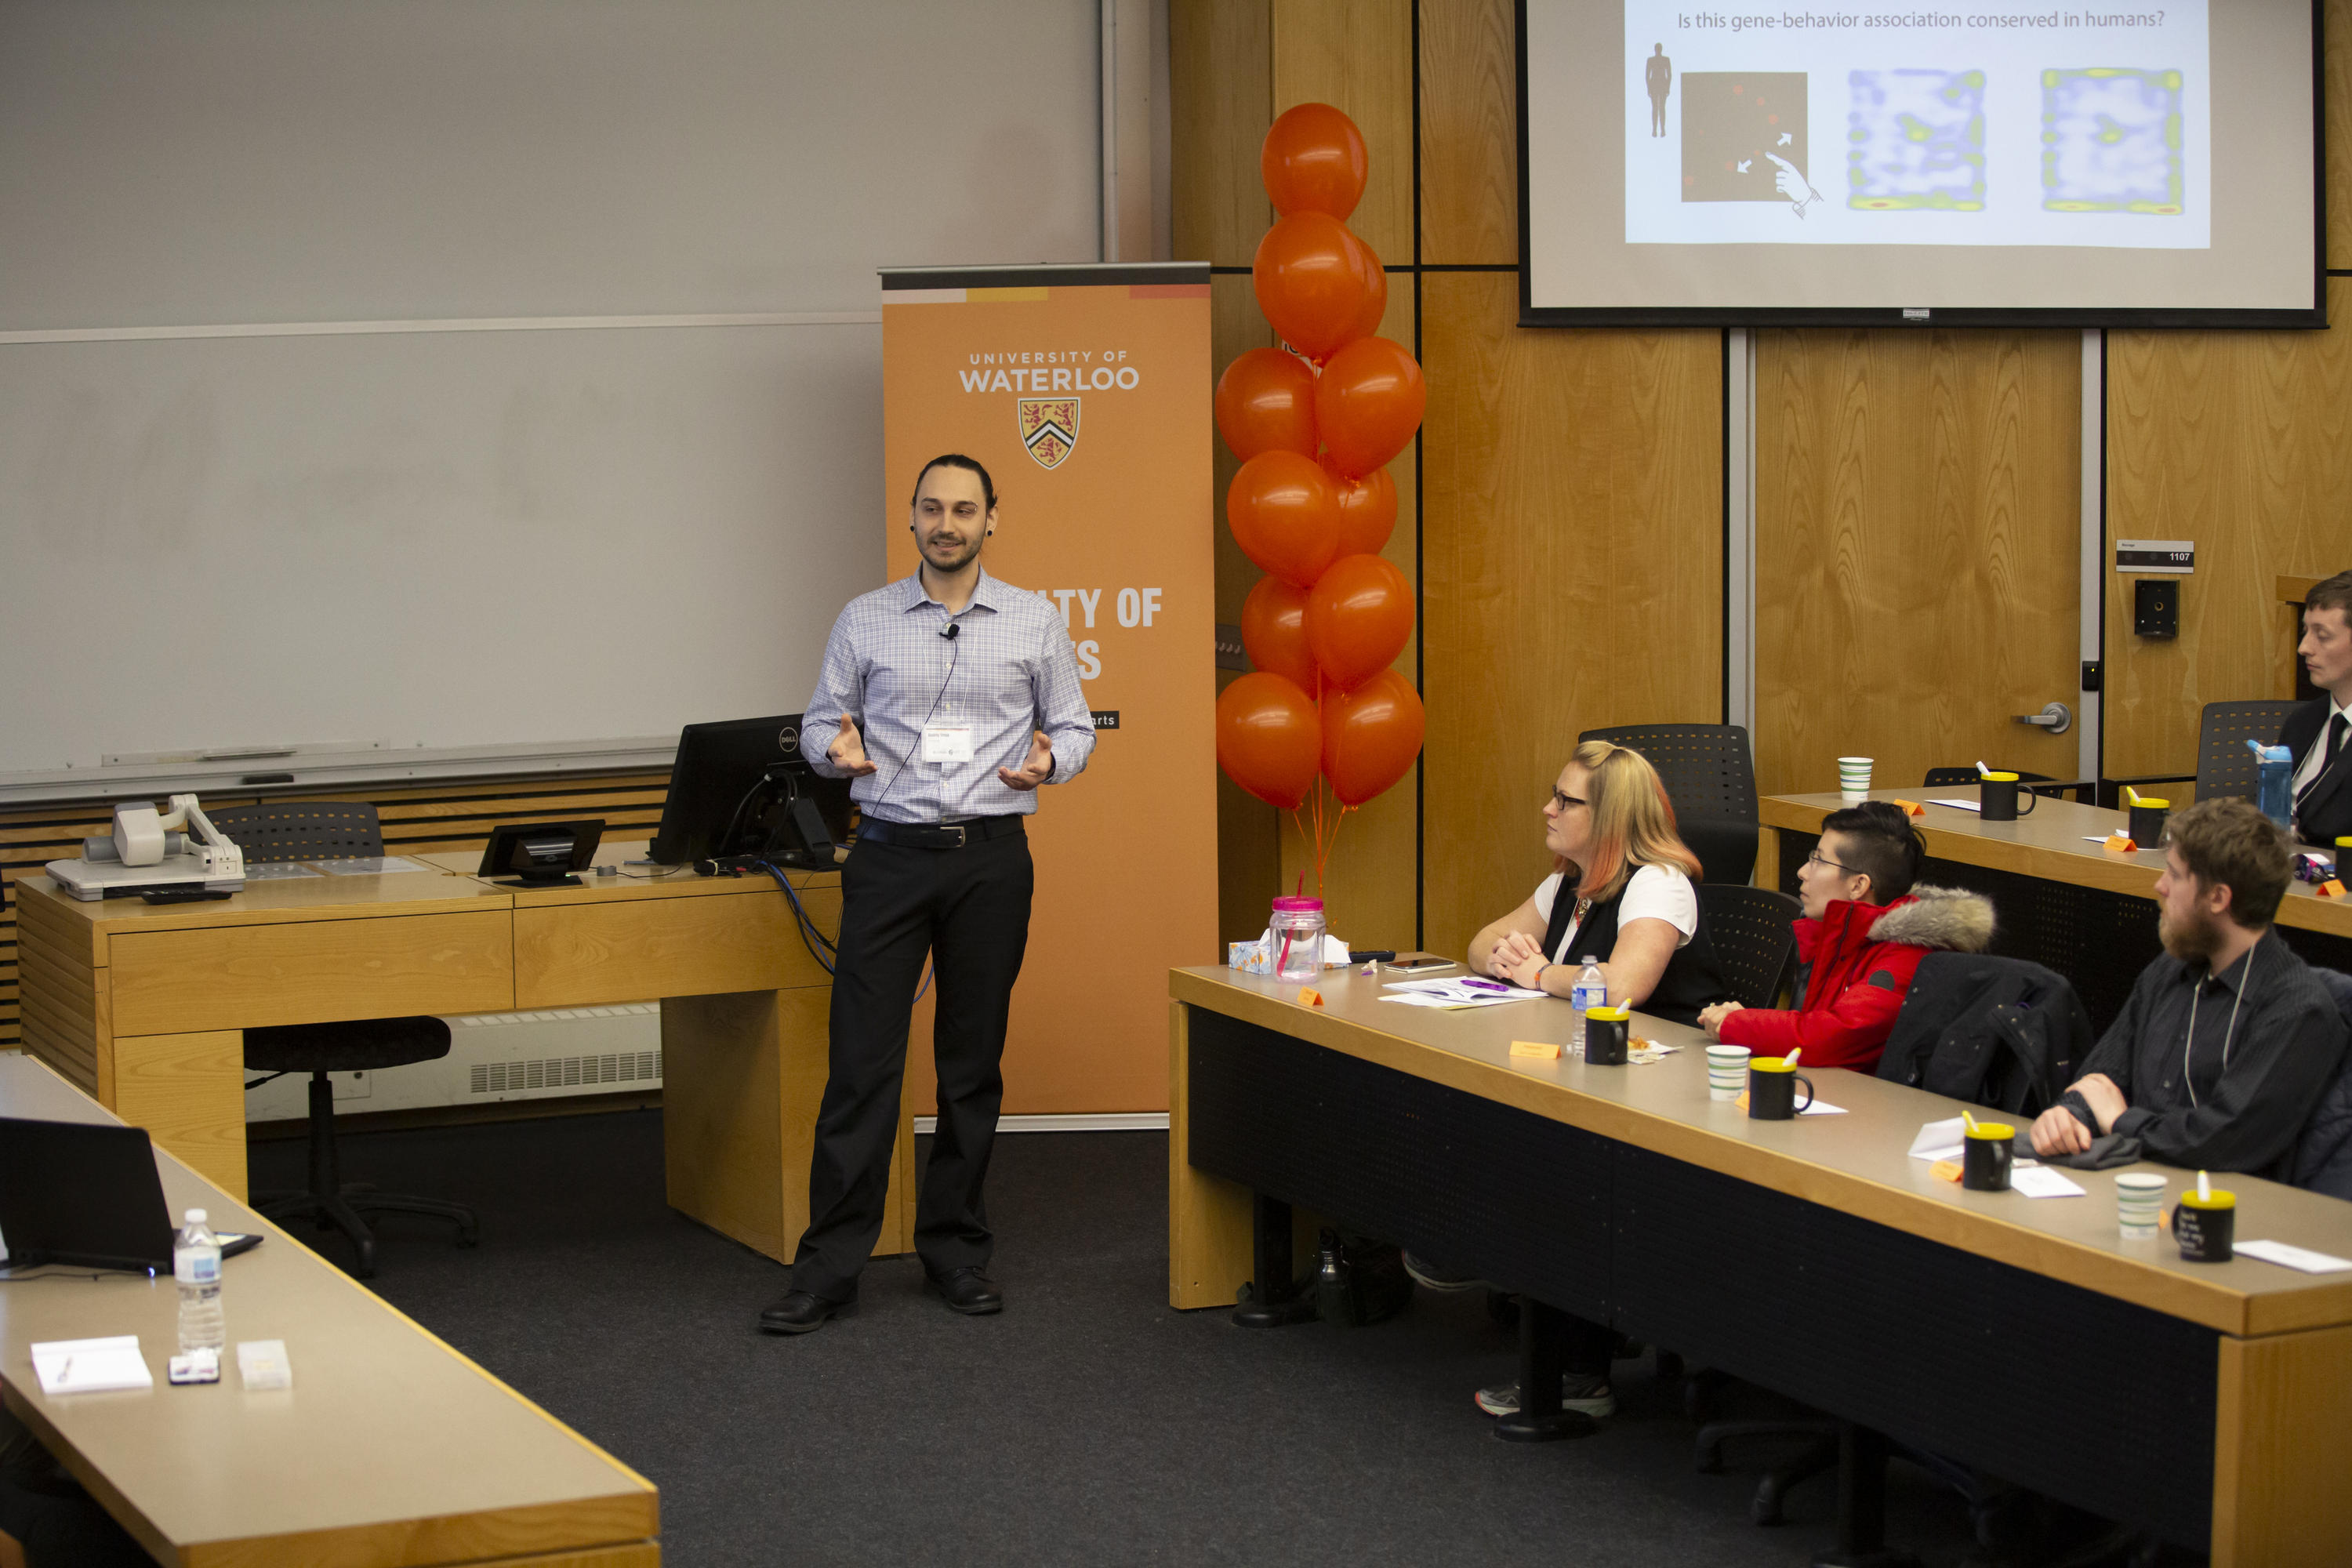 Andriy Struk, People's Choice winner presenting at the Arts 3MT heat in 2019